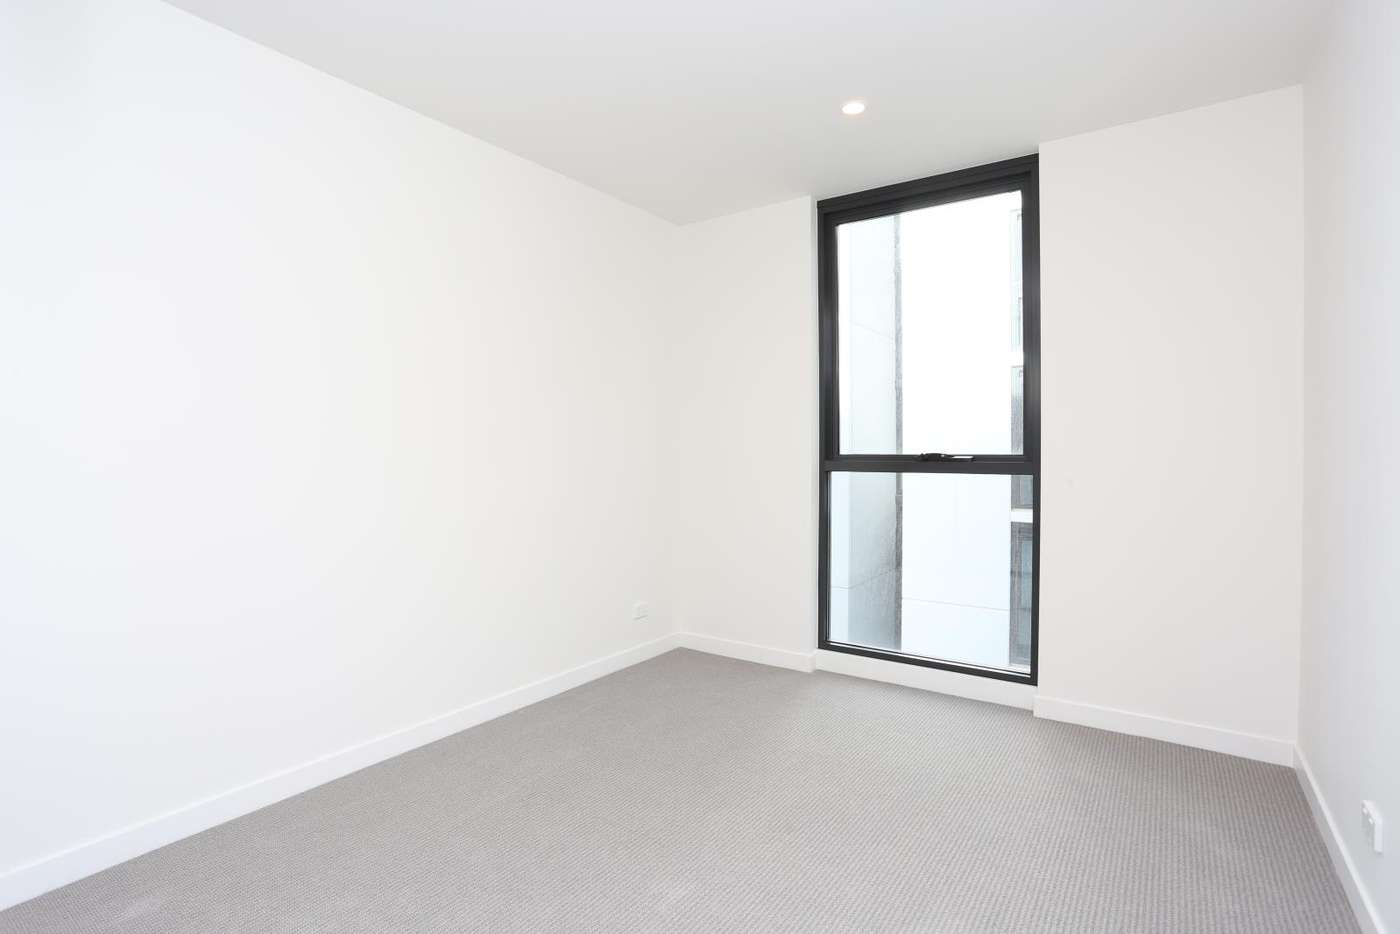 Sixth view of Homely apartment listing, 407/1 Olive York Way, Brunswick West VIC 3055